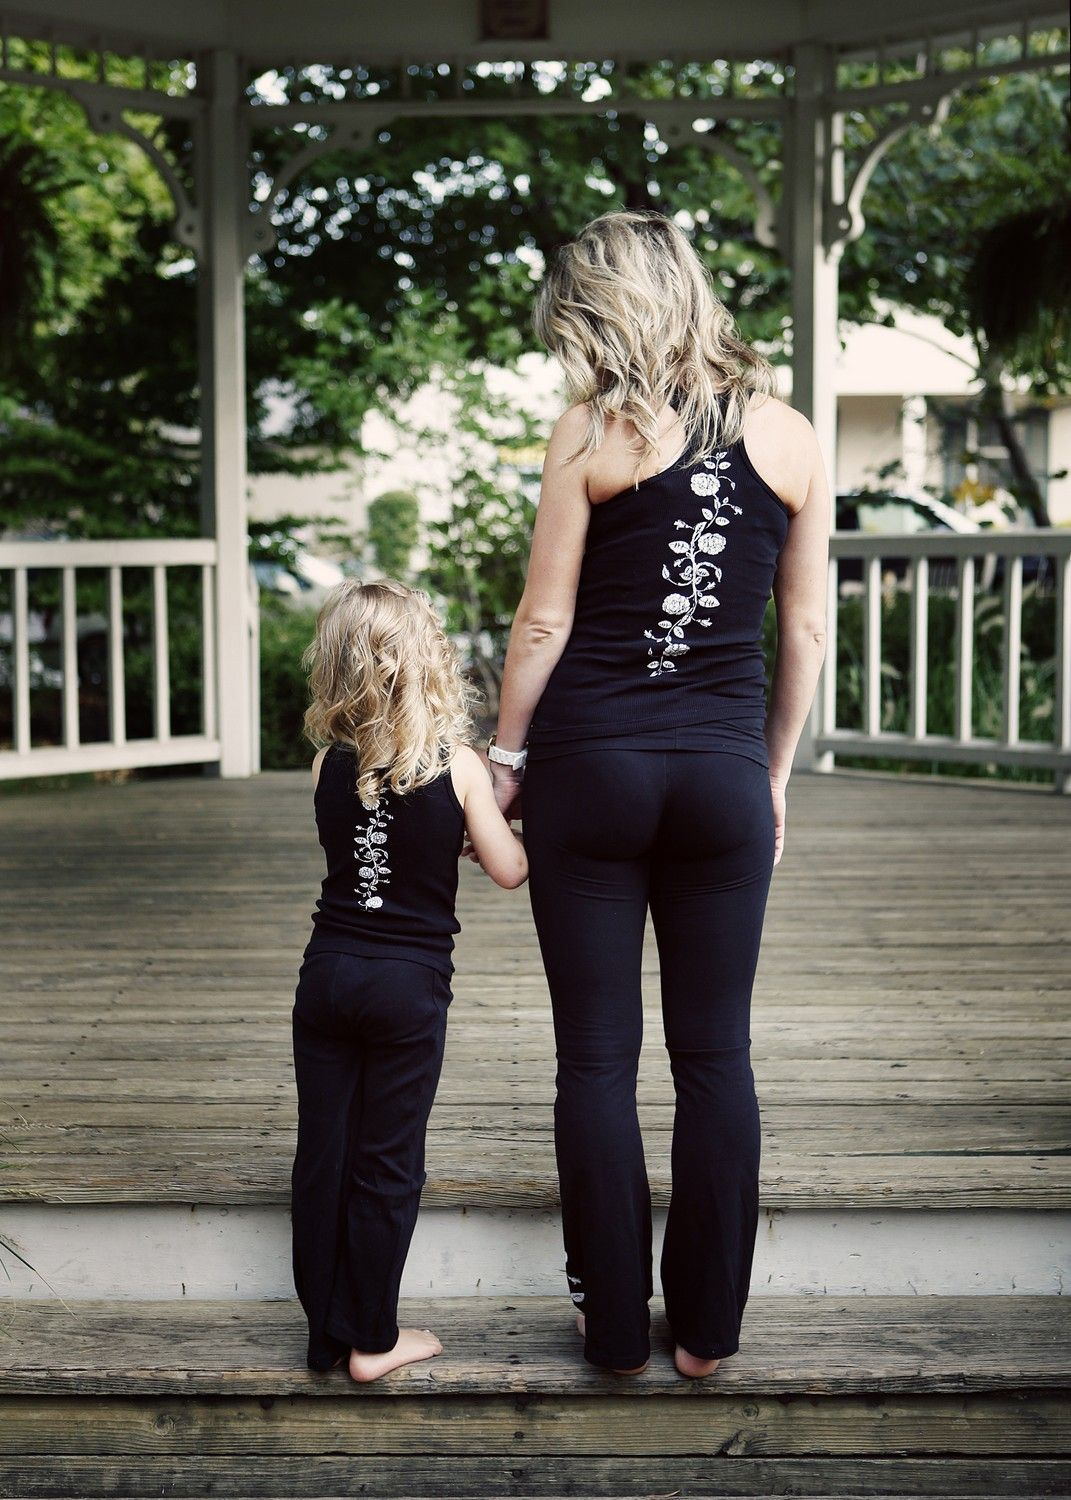 Mommy and daughter matching outfits <3 - Mommy And Daughter Matching Outfits <3 Clothing Pinterest